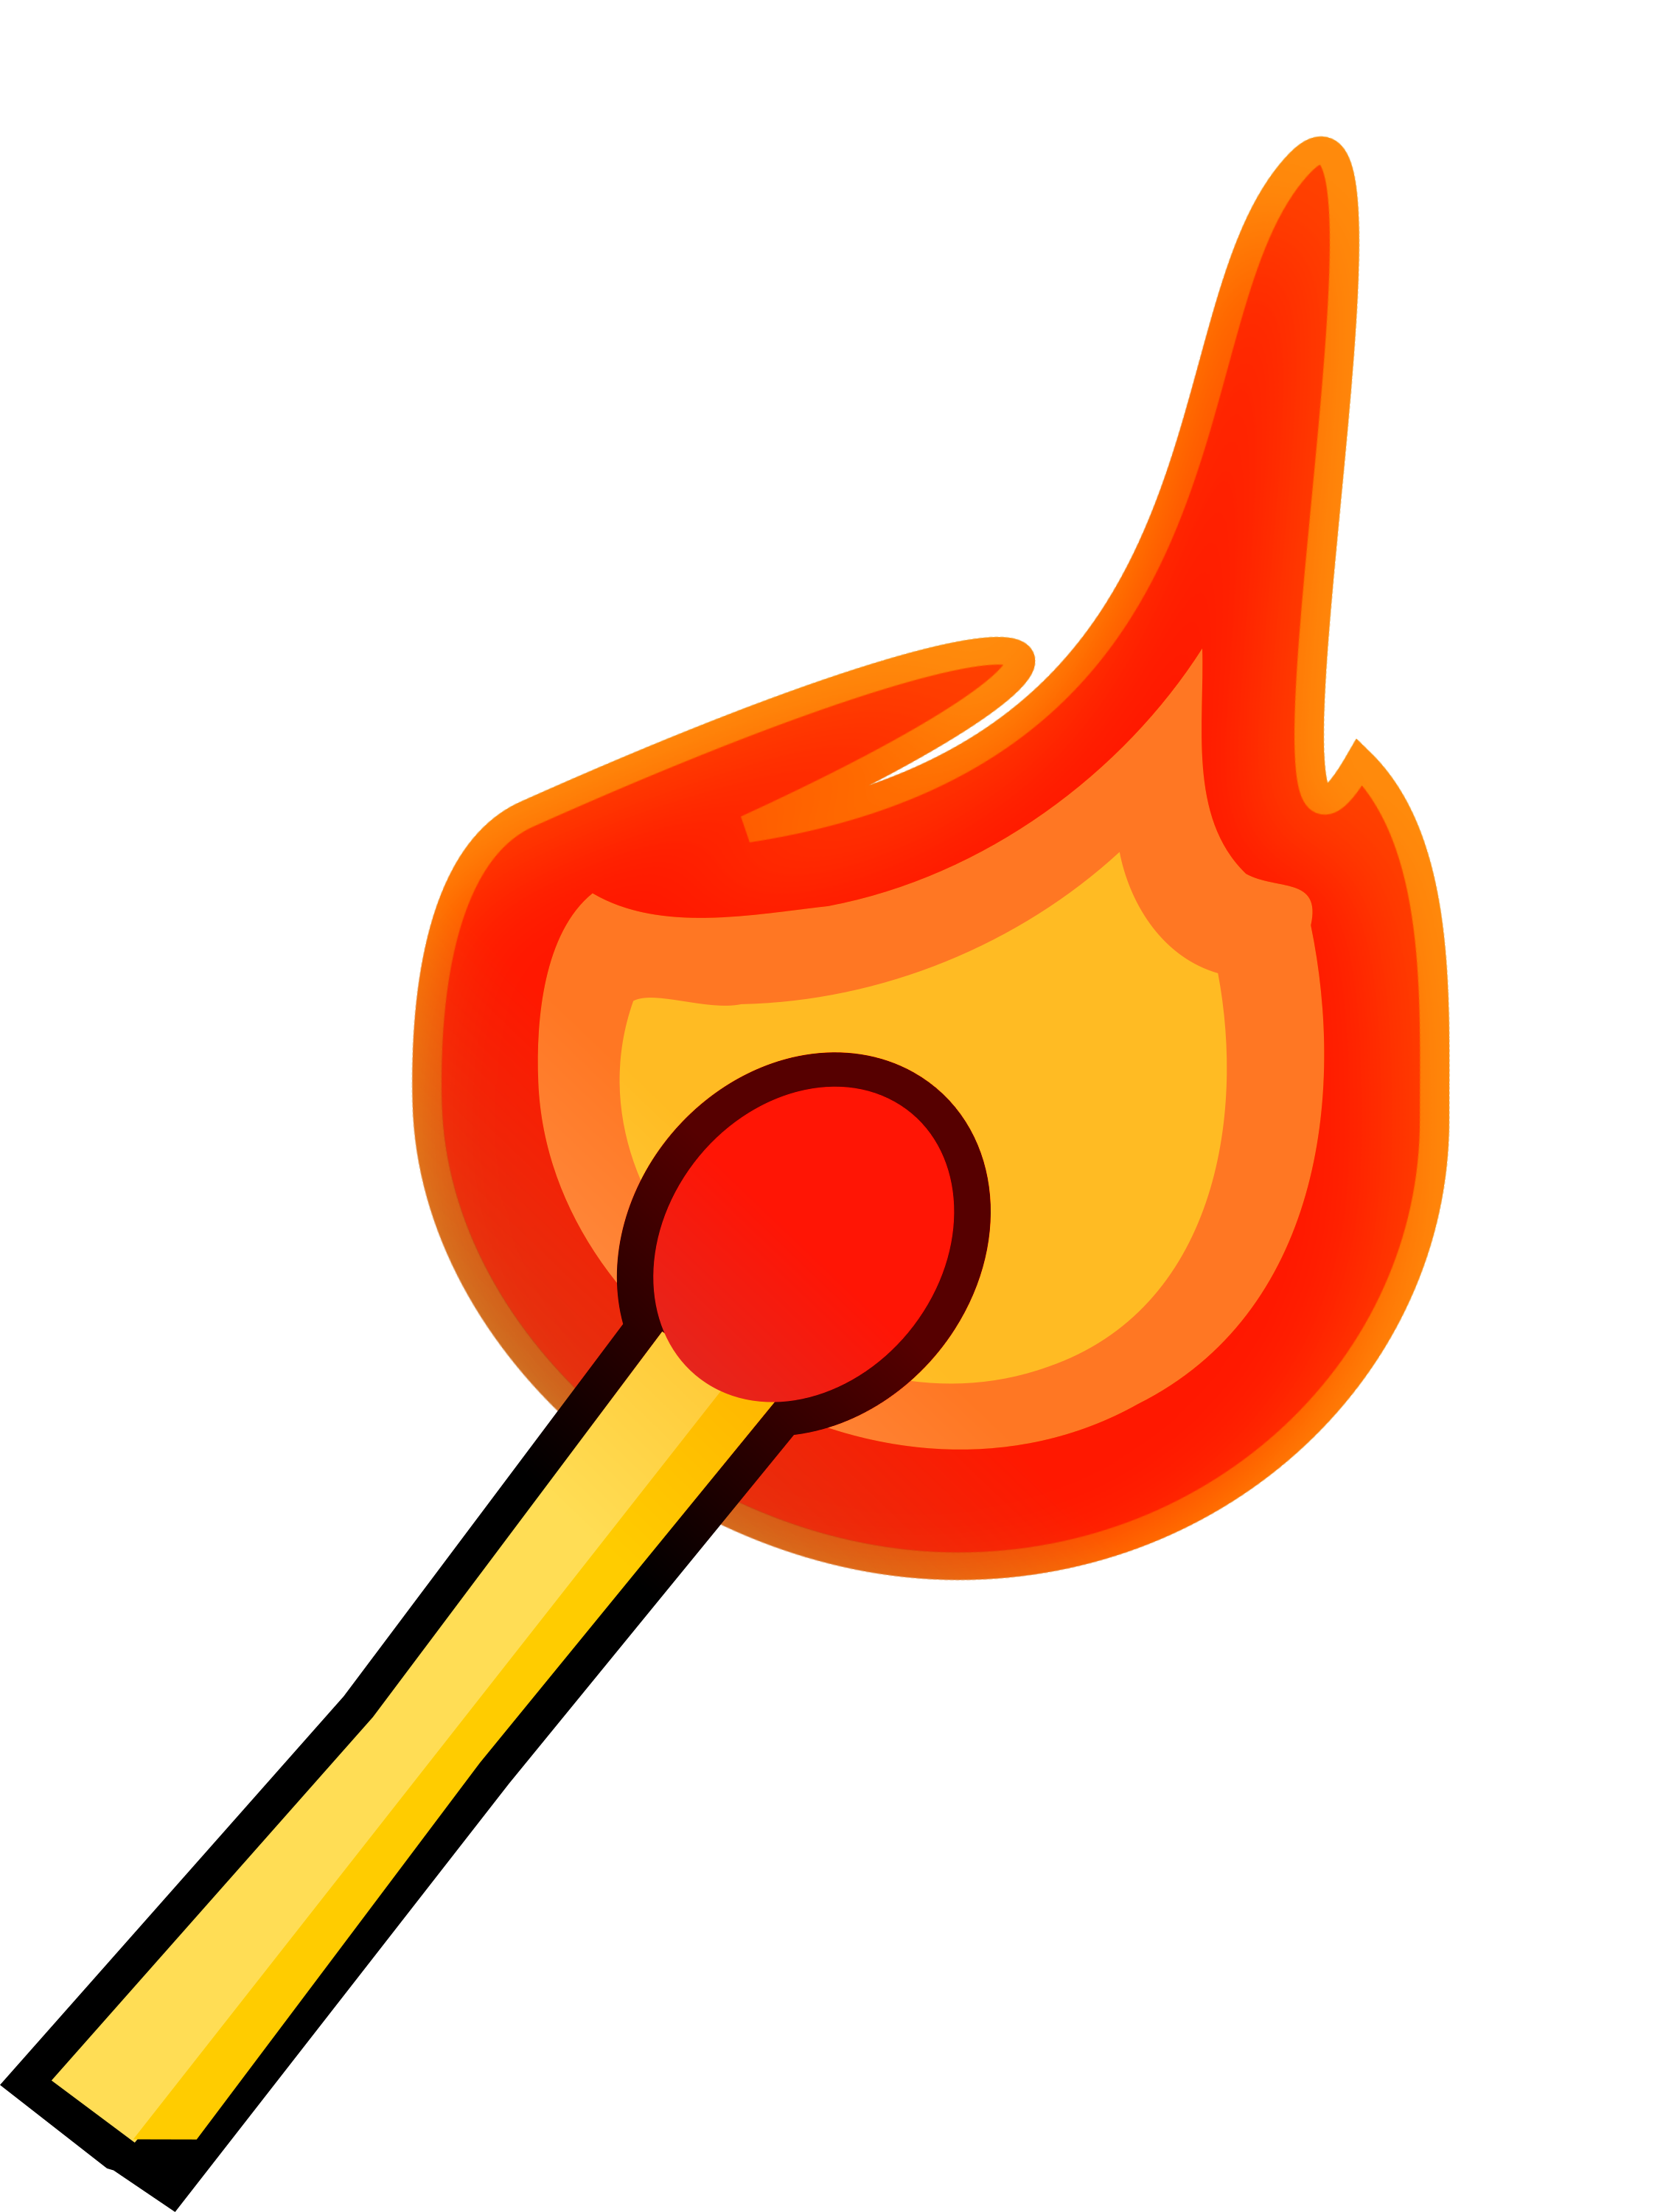 Burning match fire isolated. Fireplace clipart library